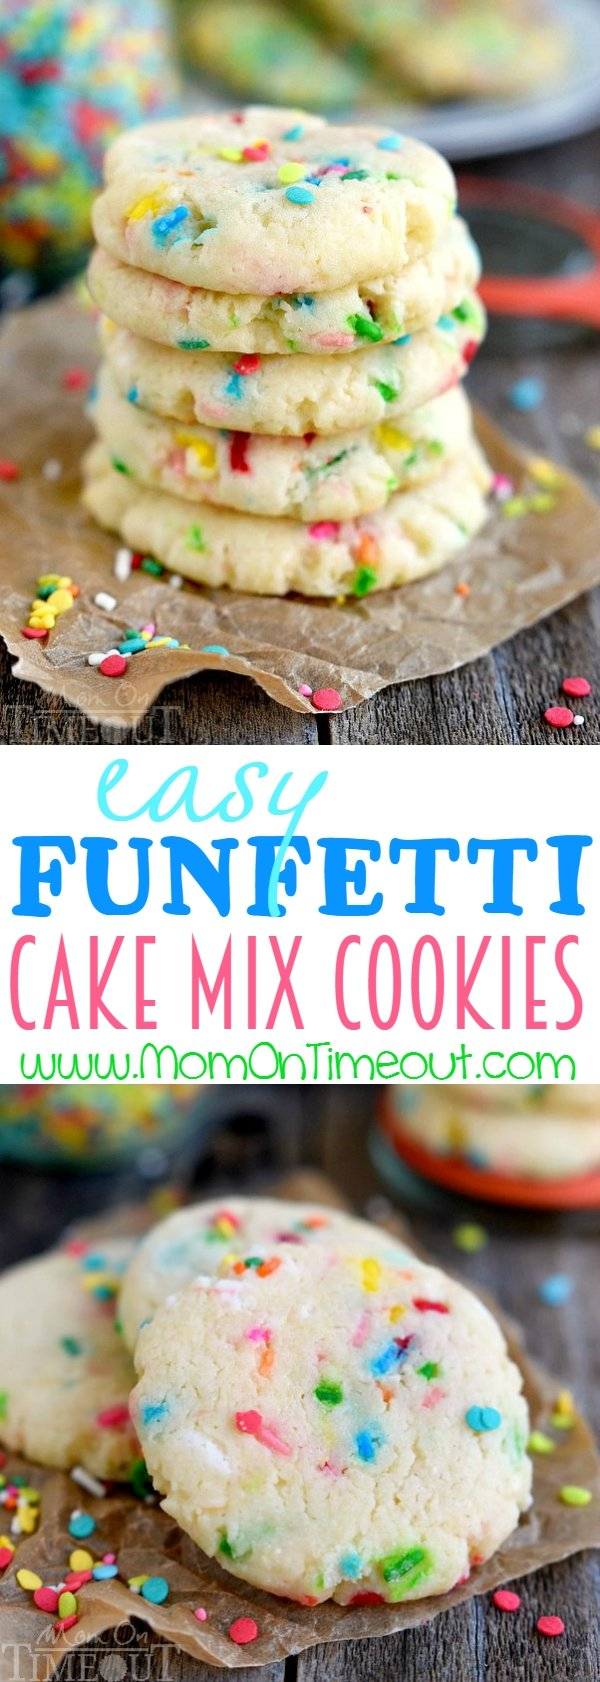 Easy Funfetti Cake Mix Cookies Mom On Timeout